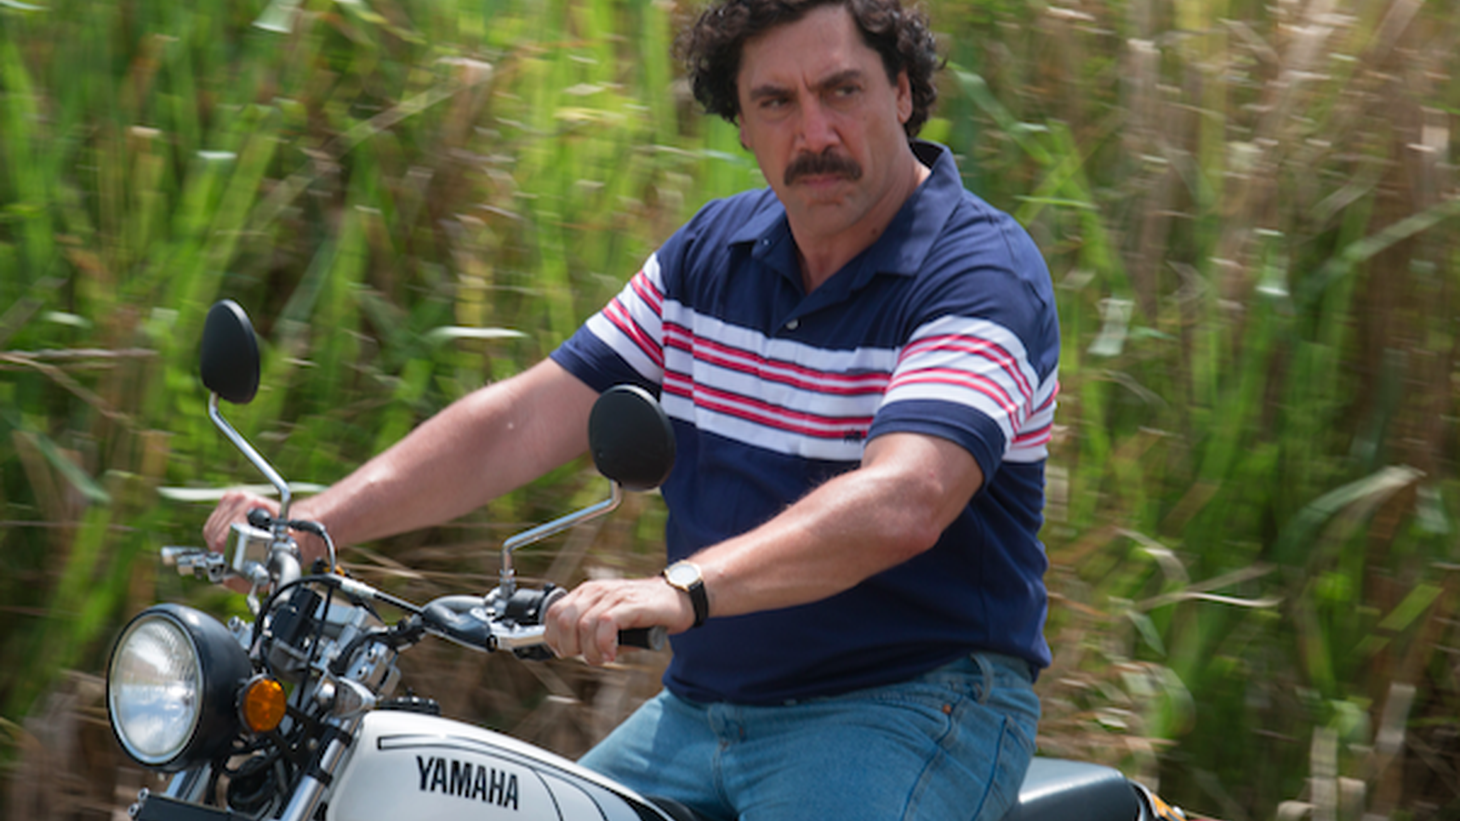 """Javier Bardem played the real-life quadriplegic activist Ramon Sampedro in """"The Sea Inside,"""" and psycho-killer Anton Chigurh in """"No Country For Old Men."""" Now he portrays notorious Colombian drug lord Pablo Escobar in """"Loving Pablo."""""""